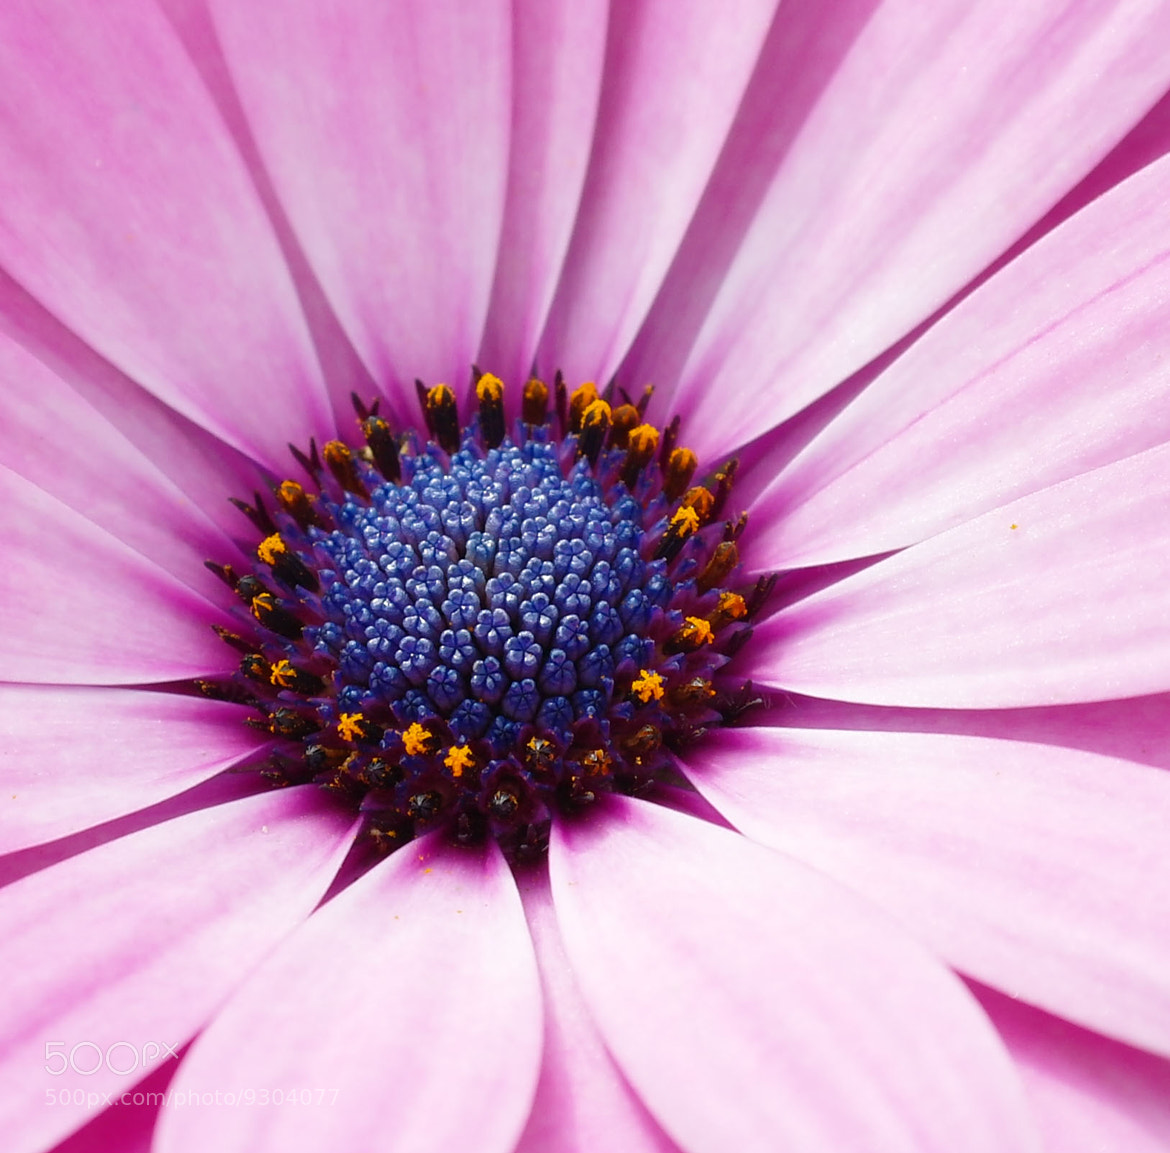 Photograph Hello Flower by Libby Hall on 500px